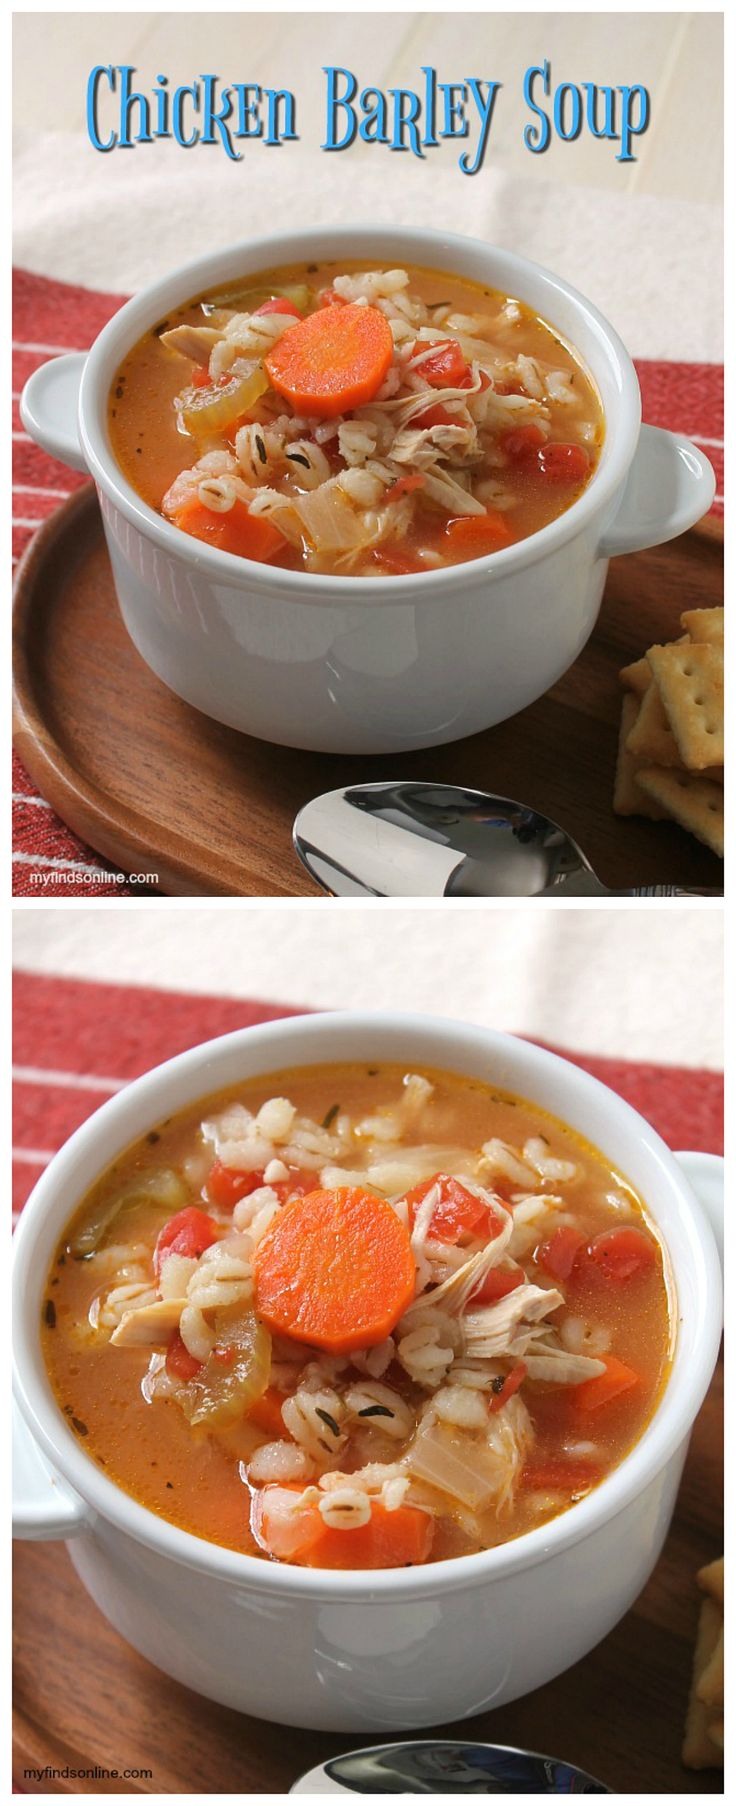 Quick and Easy Chicken Barley Soup / myfindsonline.com